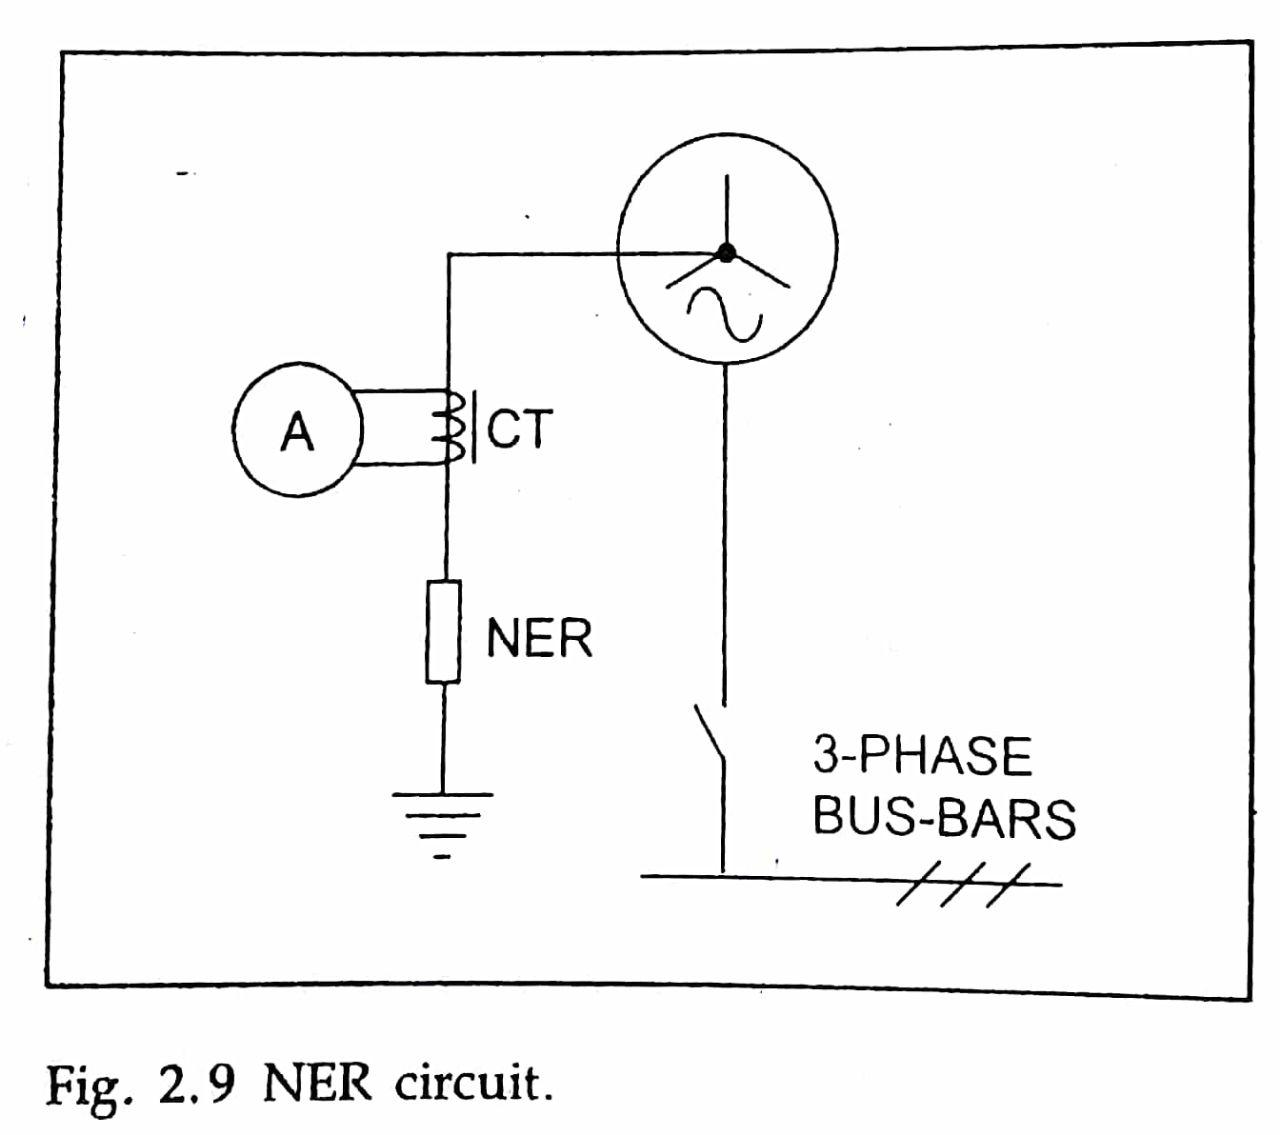 small resolution of  be provided using current transformer ct if motor is healthy phasor sum of current measured by ct is zero if an earth fault occurs in motor phasor sum